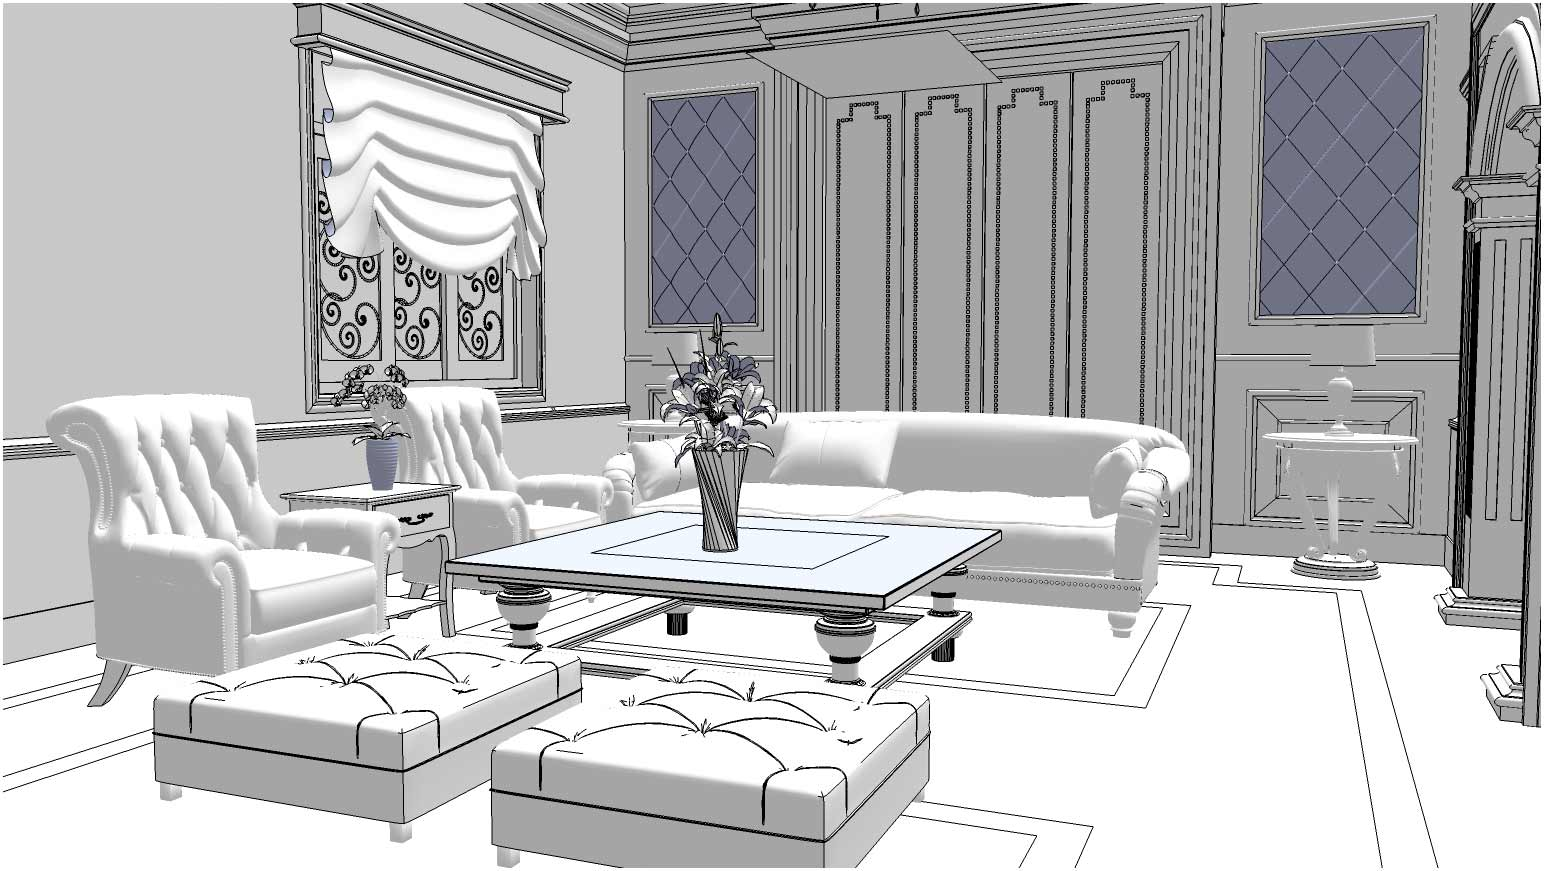 Free sketchup 3d model living room 13 vray sketchup tut for Living room designs 3d model